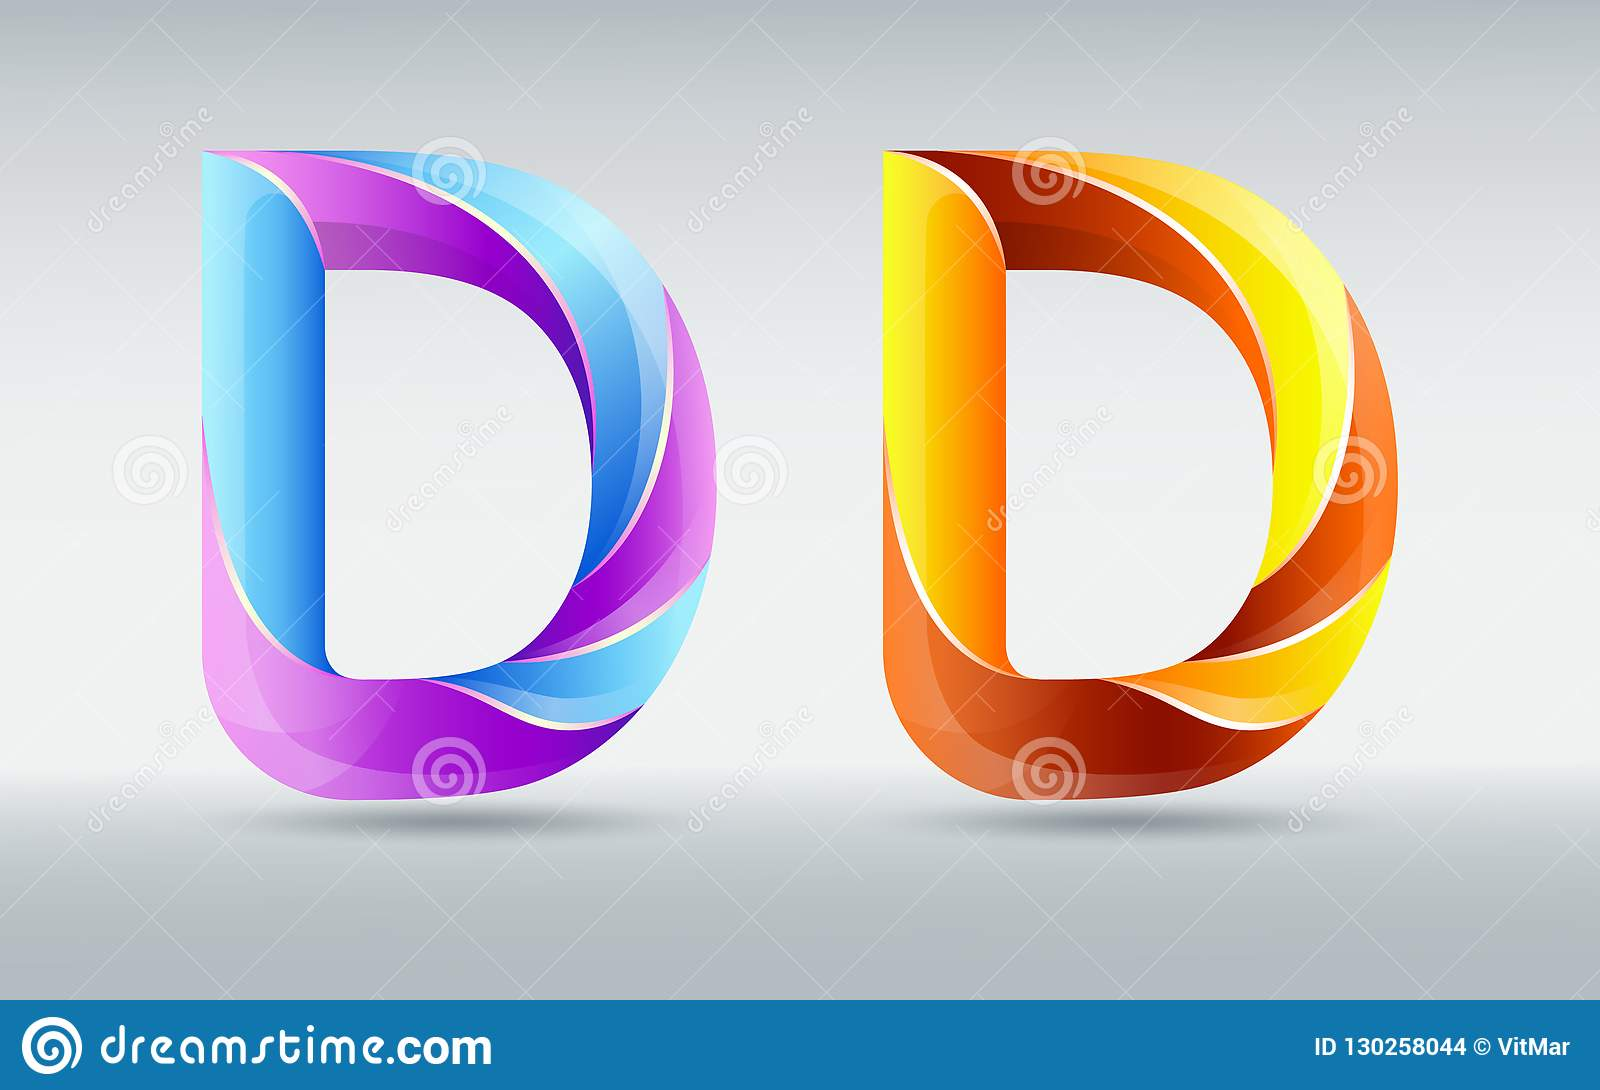 Fonts  Creative Twisted Letter D  Abstract 3D Font  Caramel